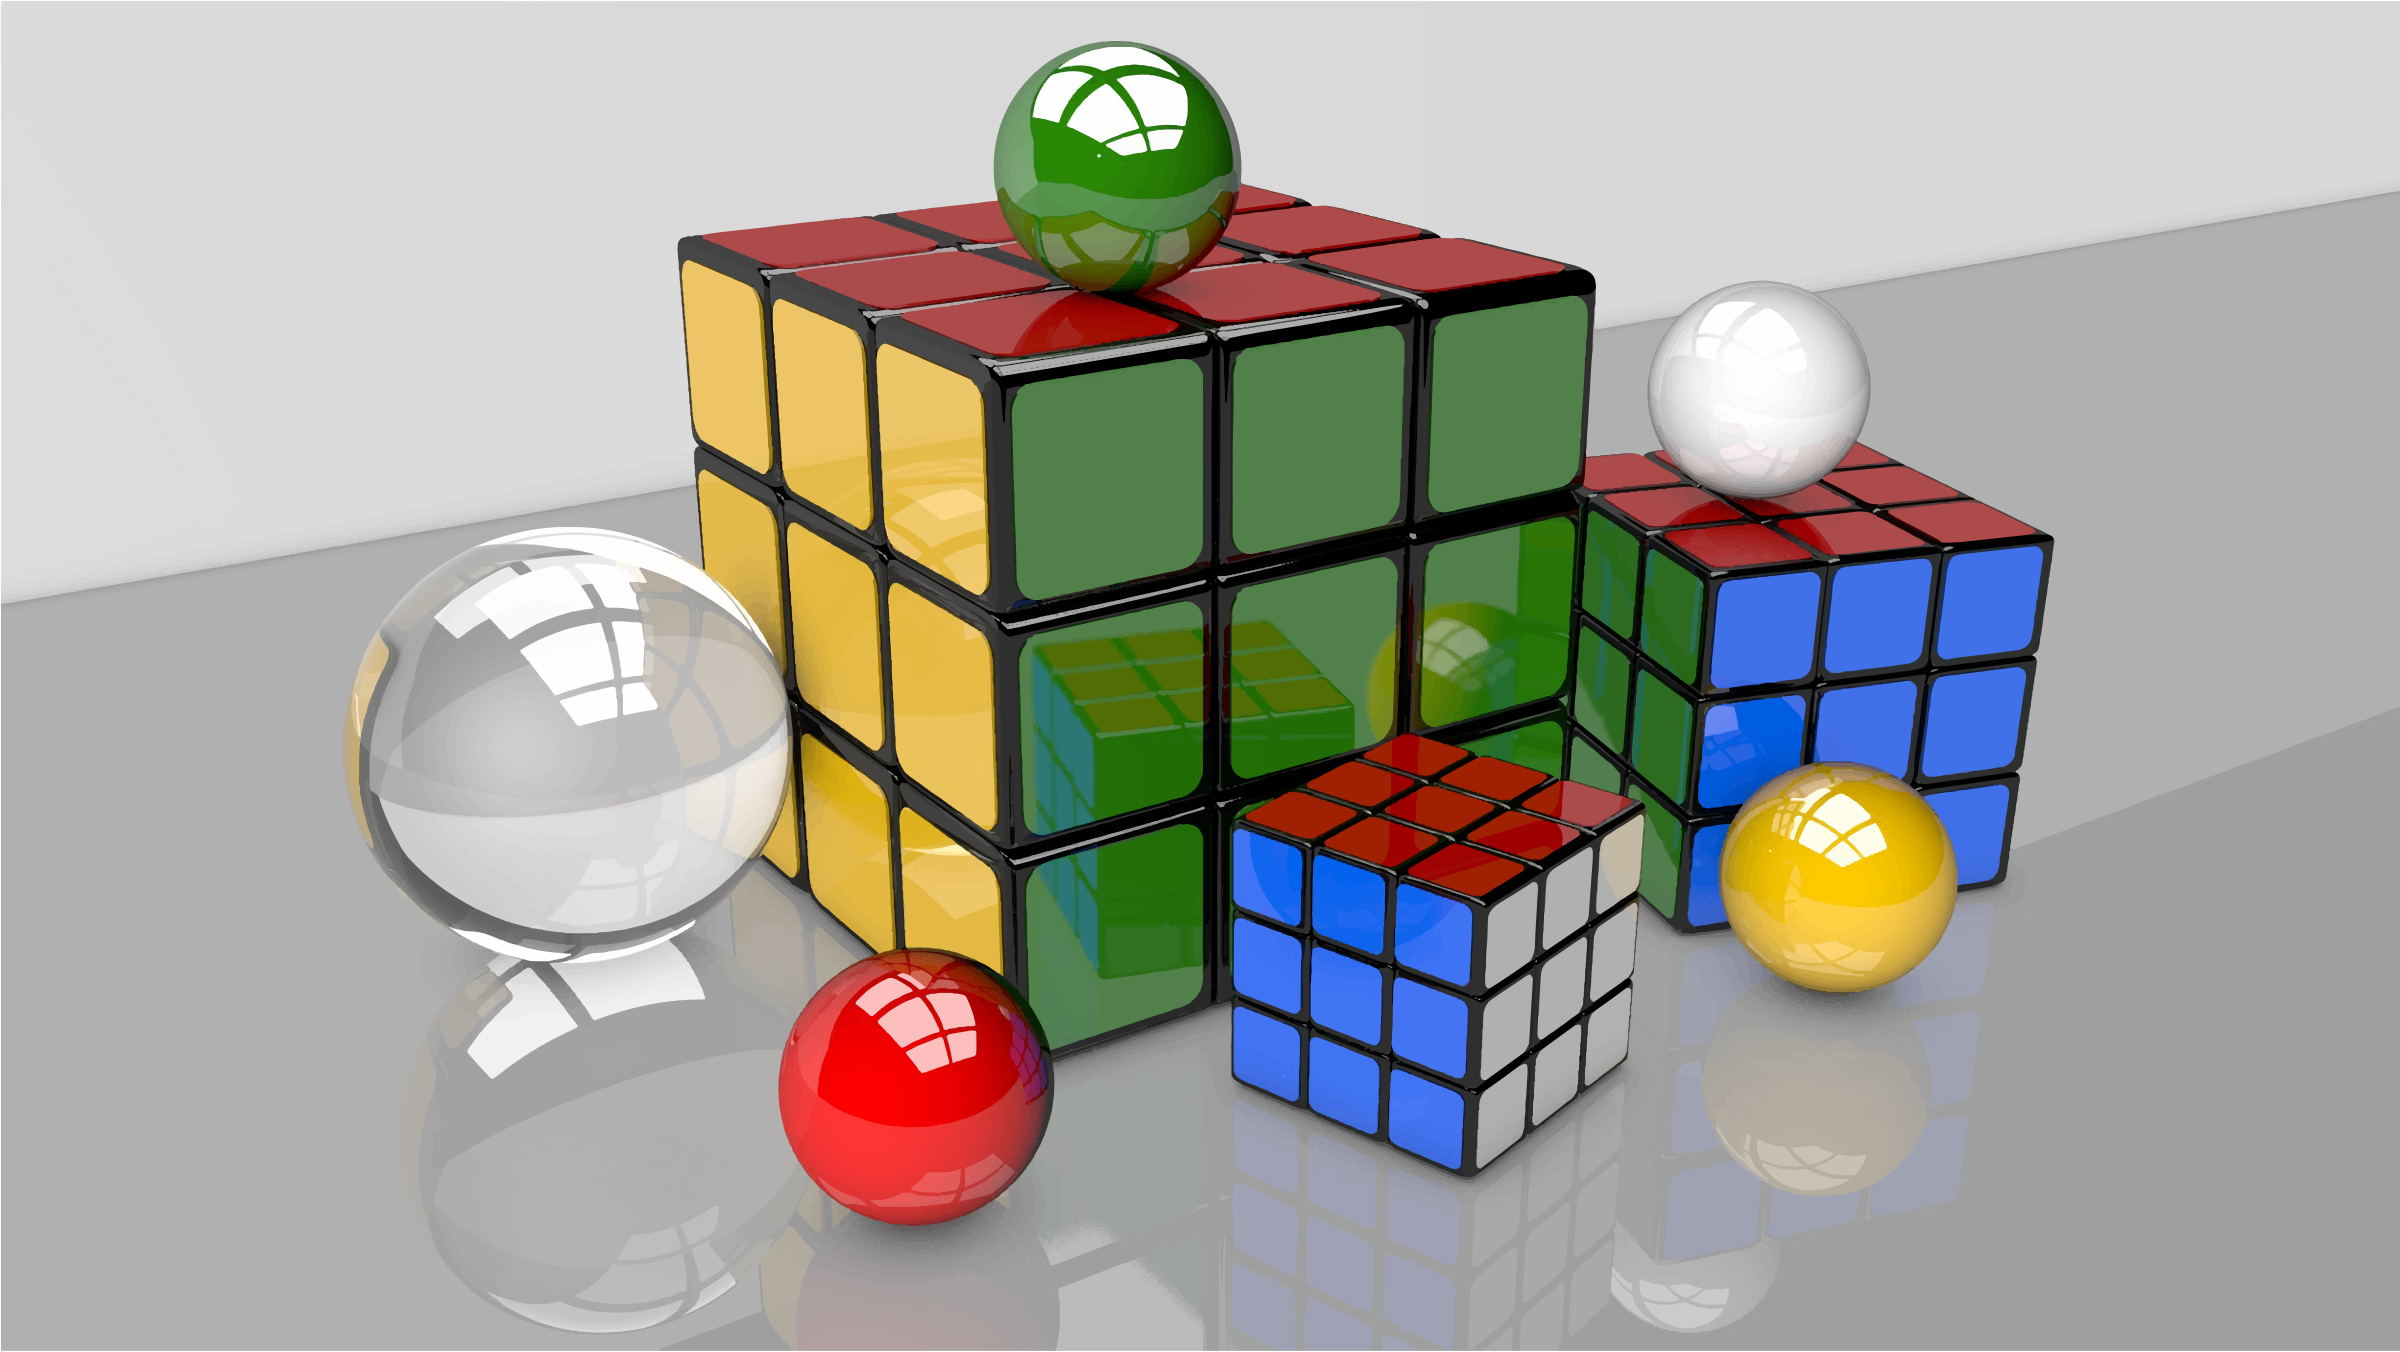 3D Rendered Puzzle Cubes And Spheres by GDJ